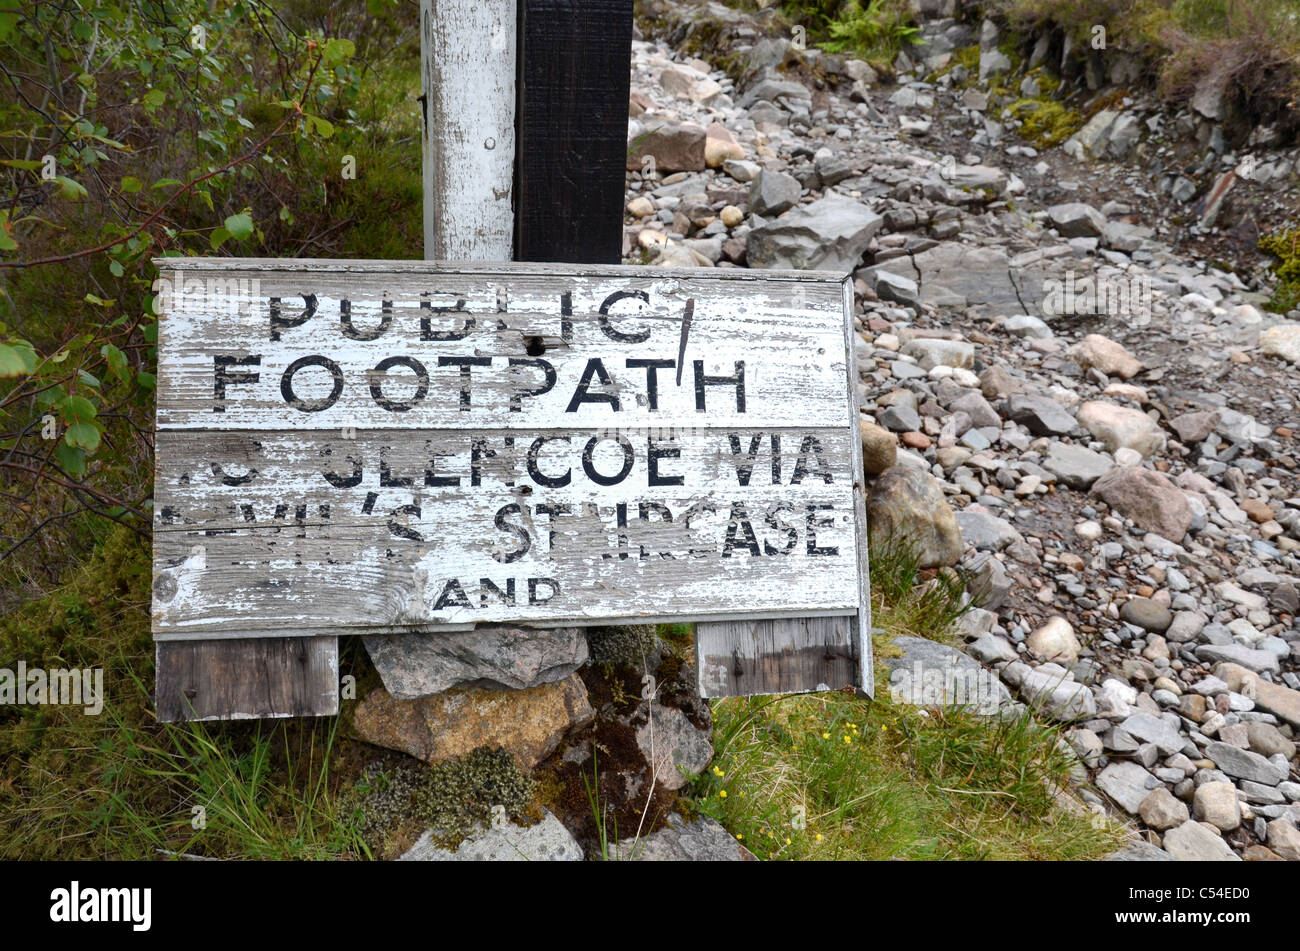 A rather weathered sign on part of the West Highland Way marking the path to Glencoe and the Devil's Staircase. - Stock Image